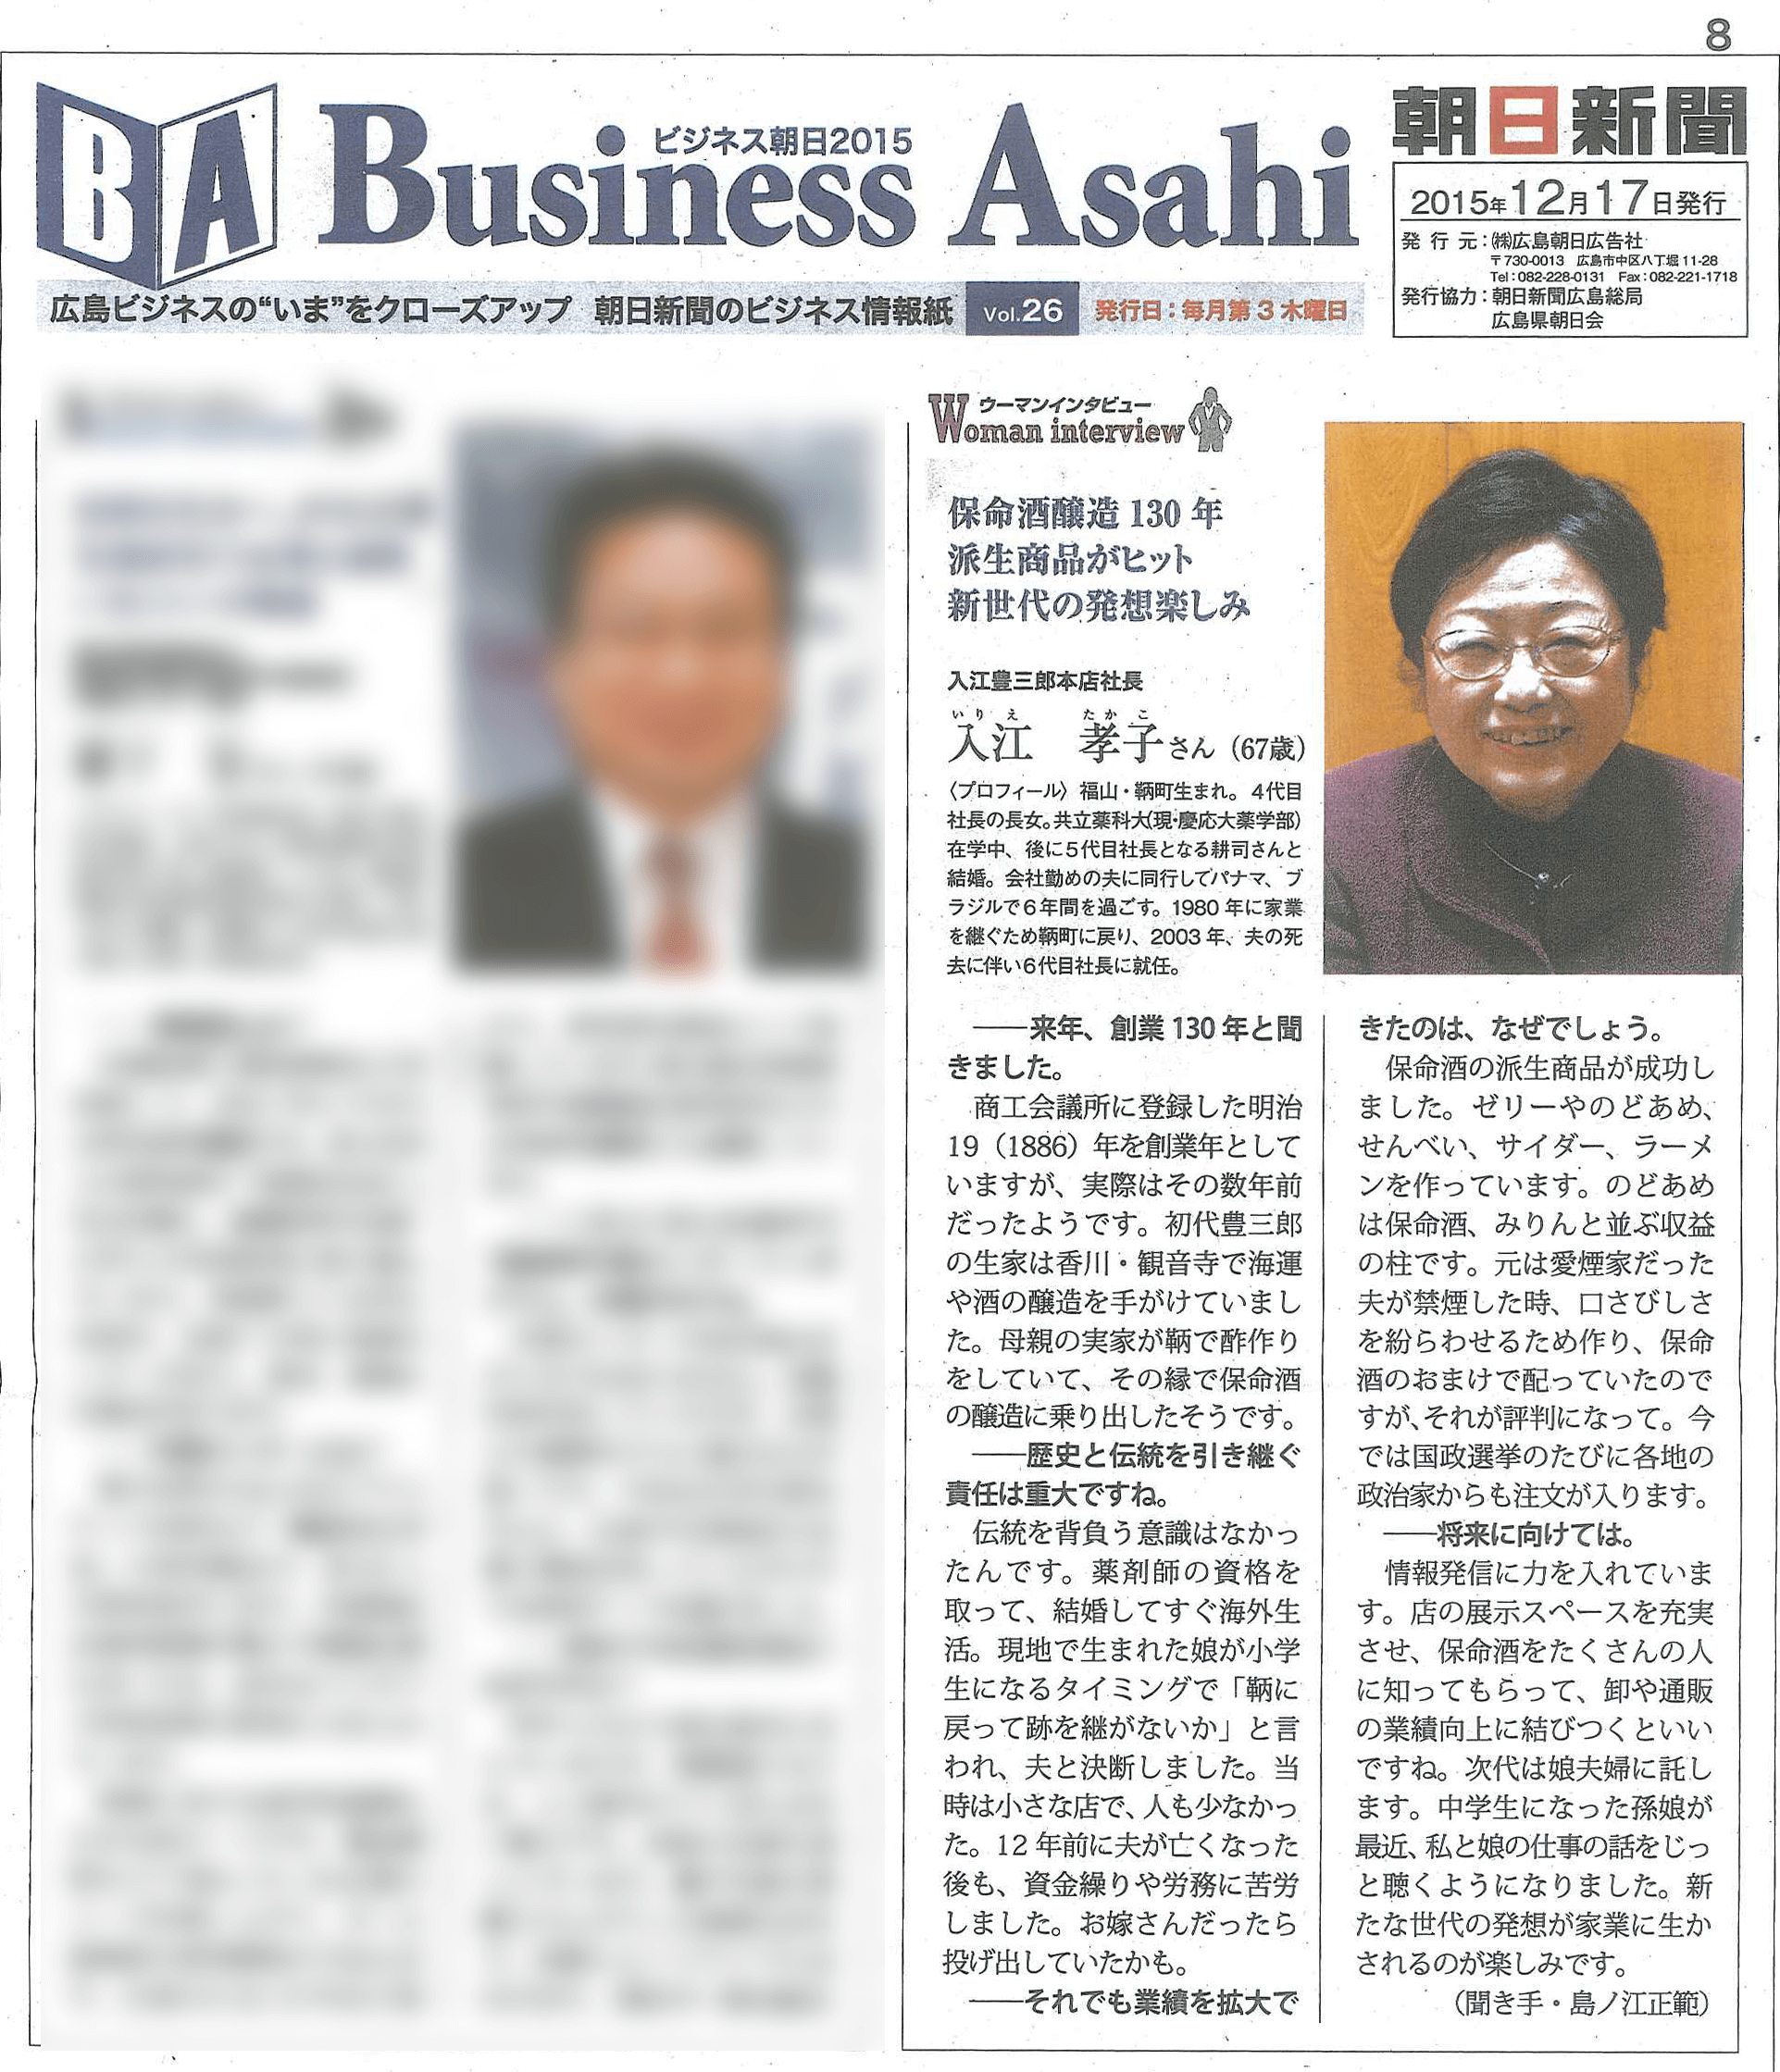 2businessAsahi_vol26